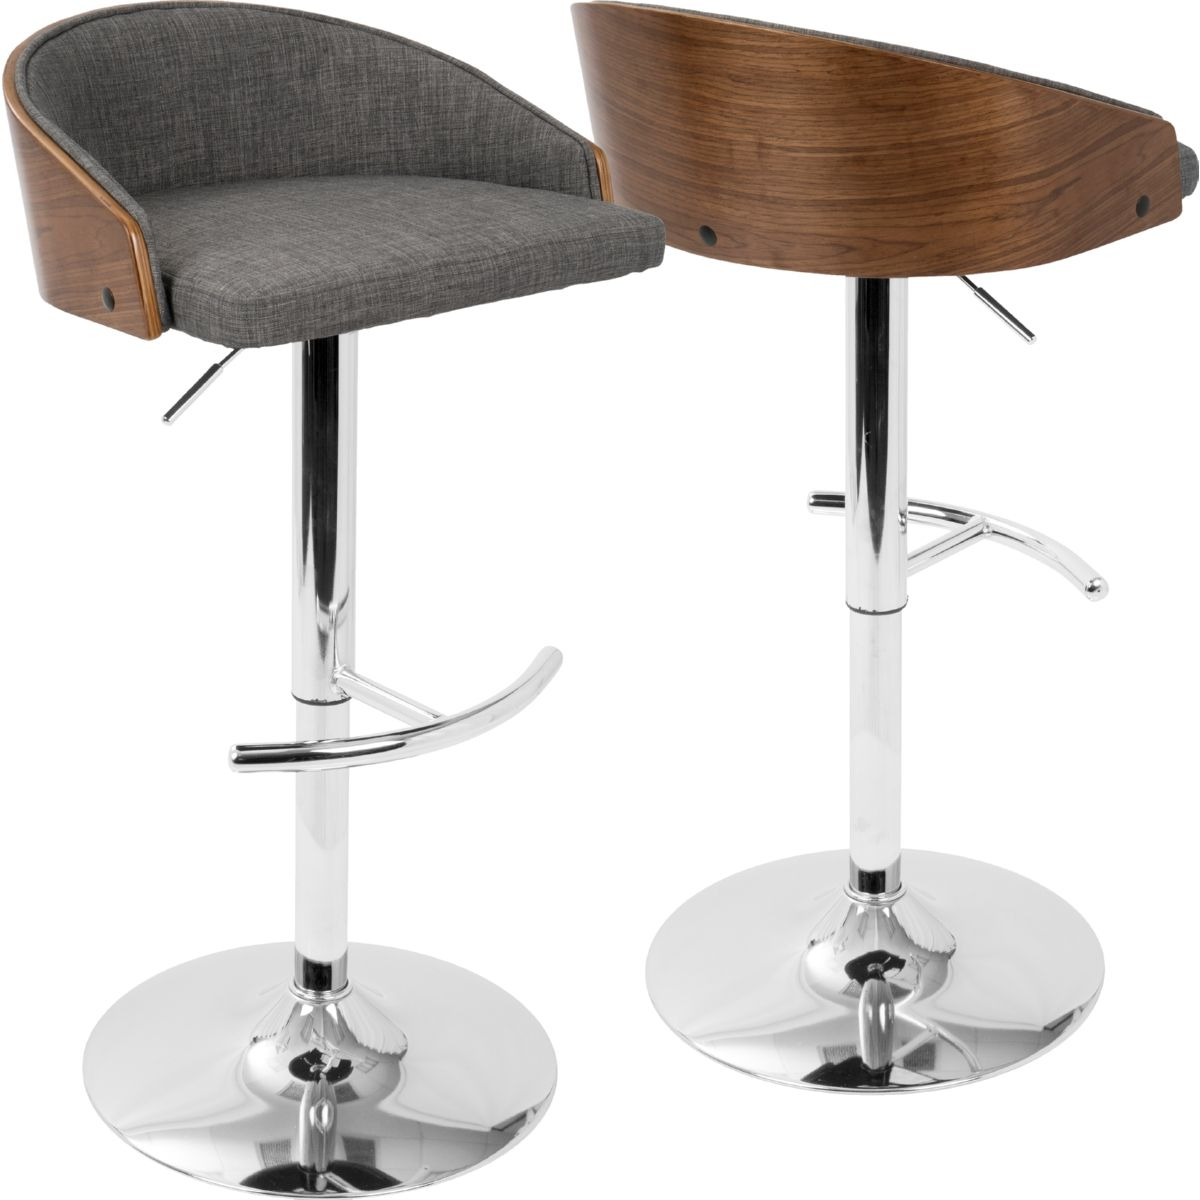 Outstanding Shiraz Mid Century Modern Adjustable Bar Stool In Walnut Caraccident5 Cool Chair Designs And Ideas Caraccident5Info